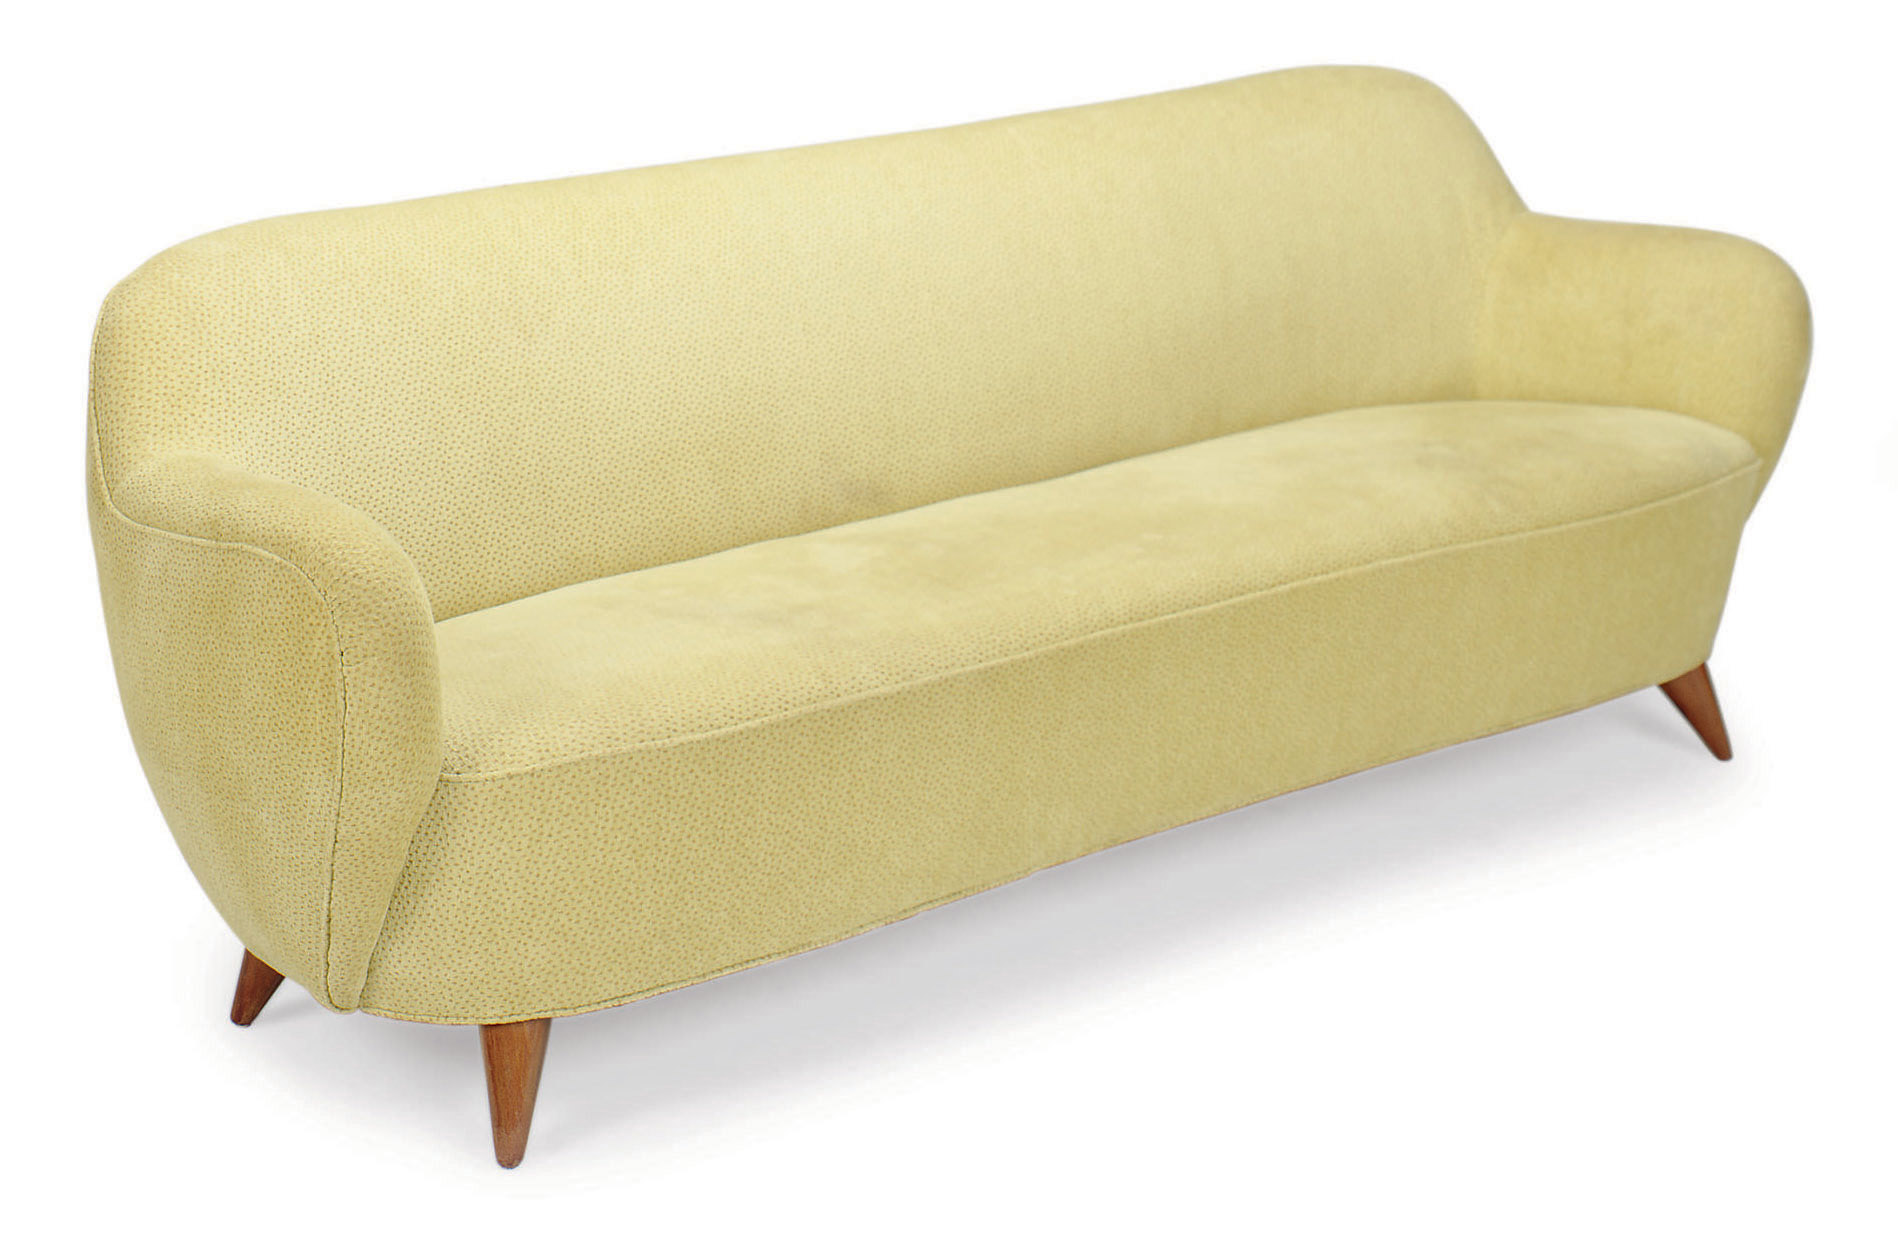 A GREEN AND GOLD PATTERNED VELOUR UPHOLSTERED SOFA,